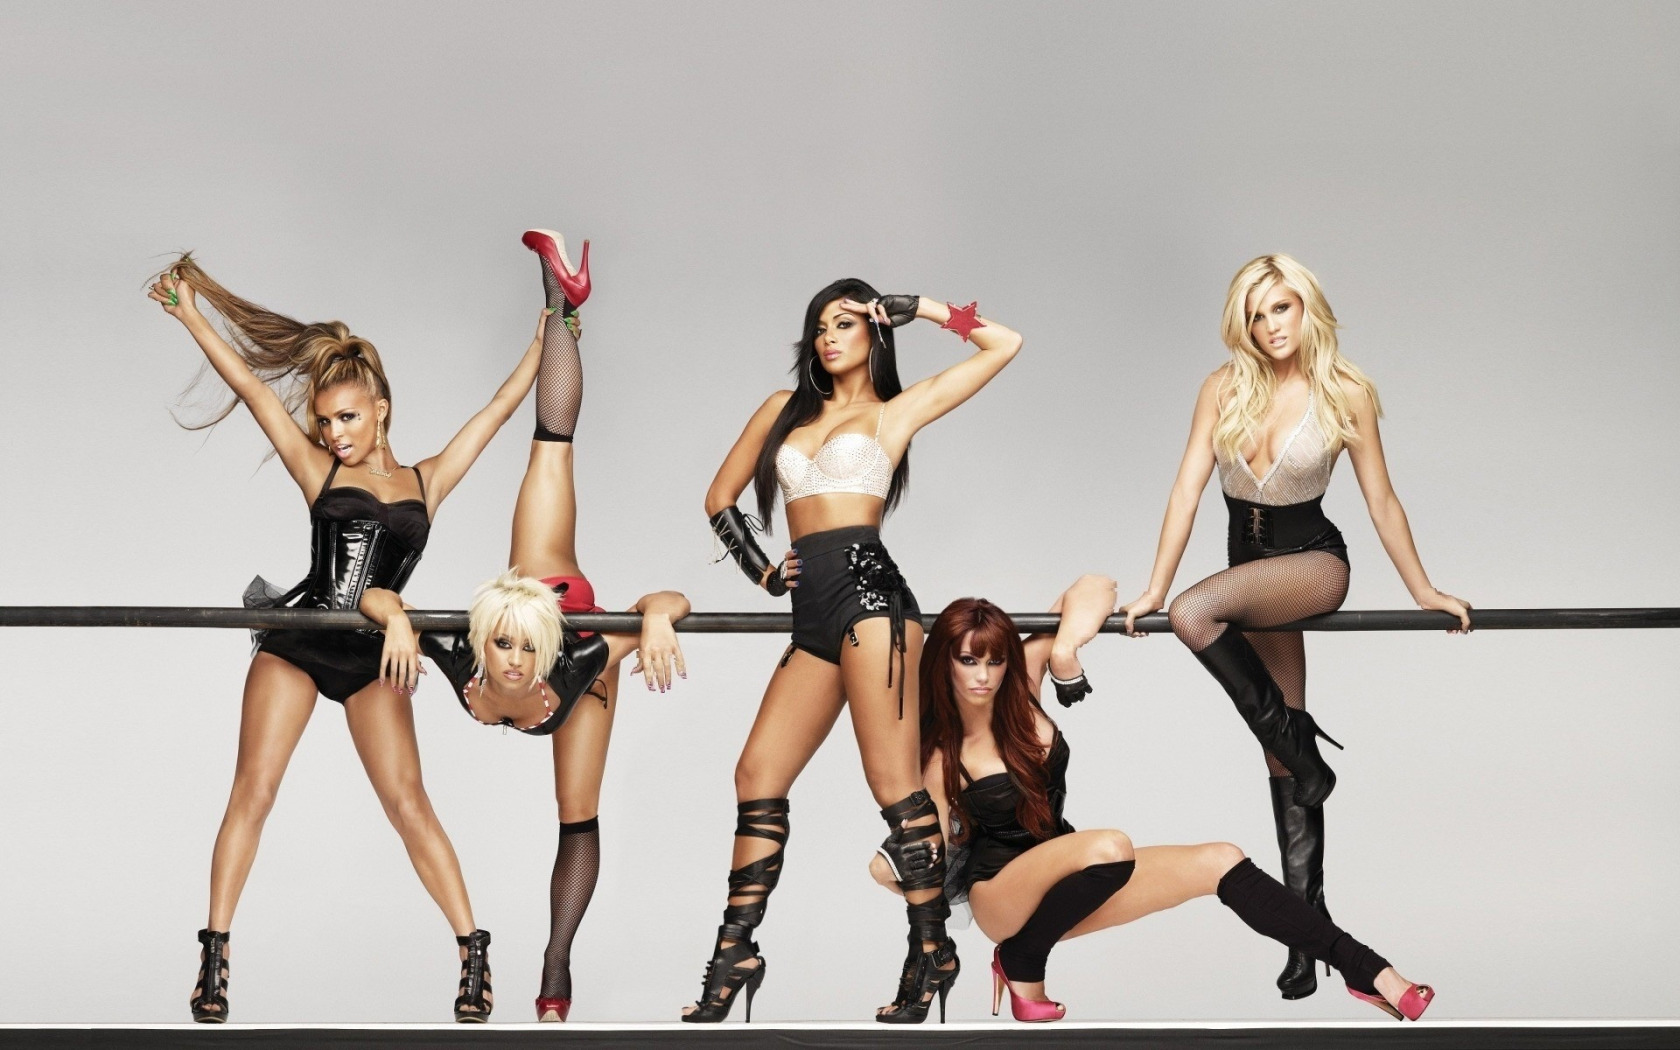 The sirens dancers strippers girls